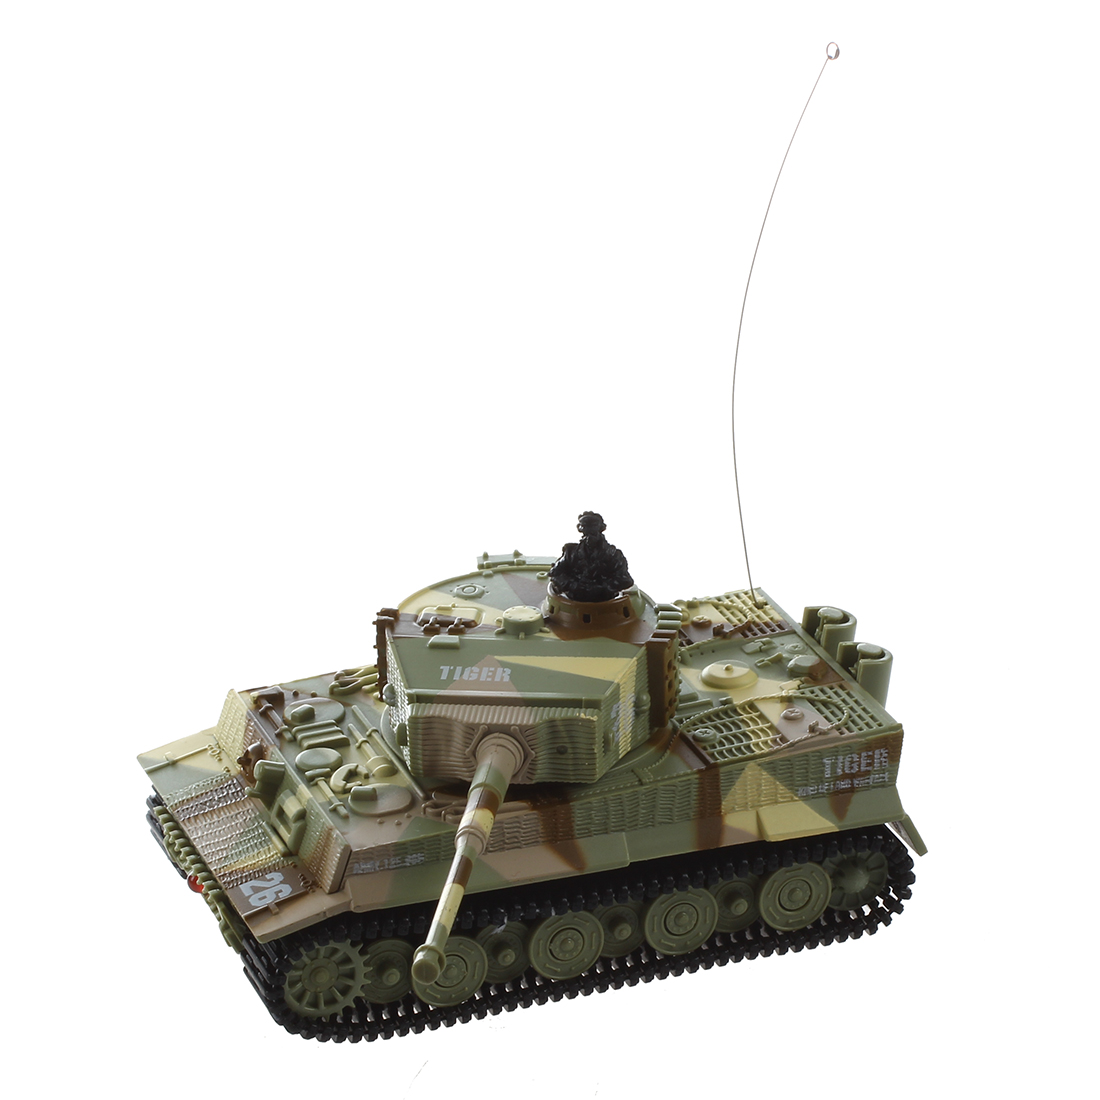 Remote, Army, Gift, Tiger, Toy, Tank